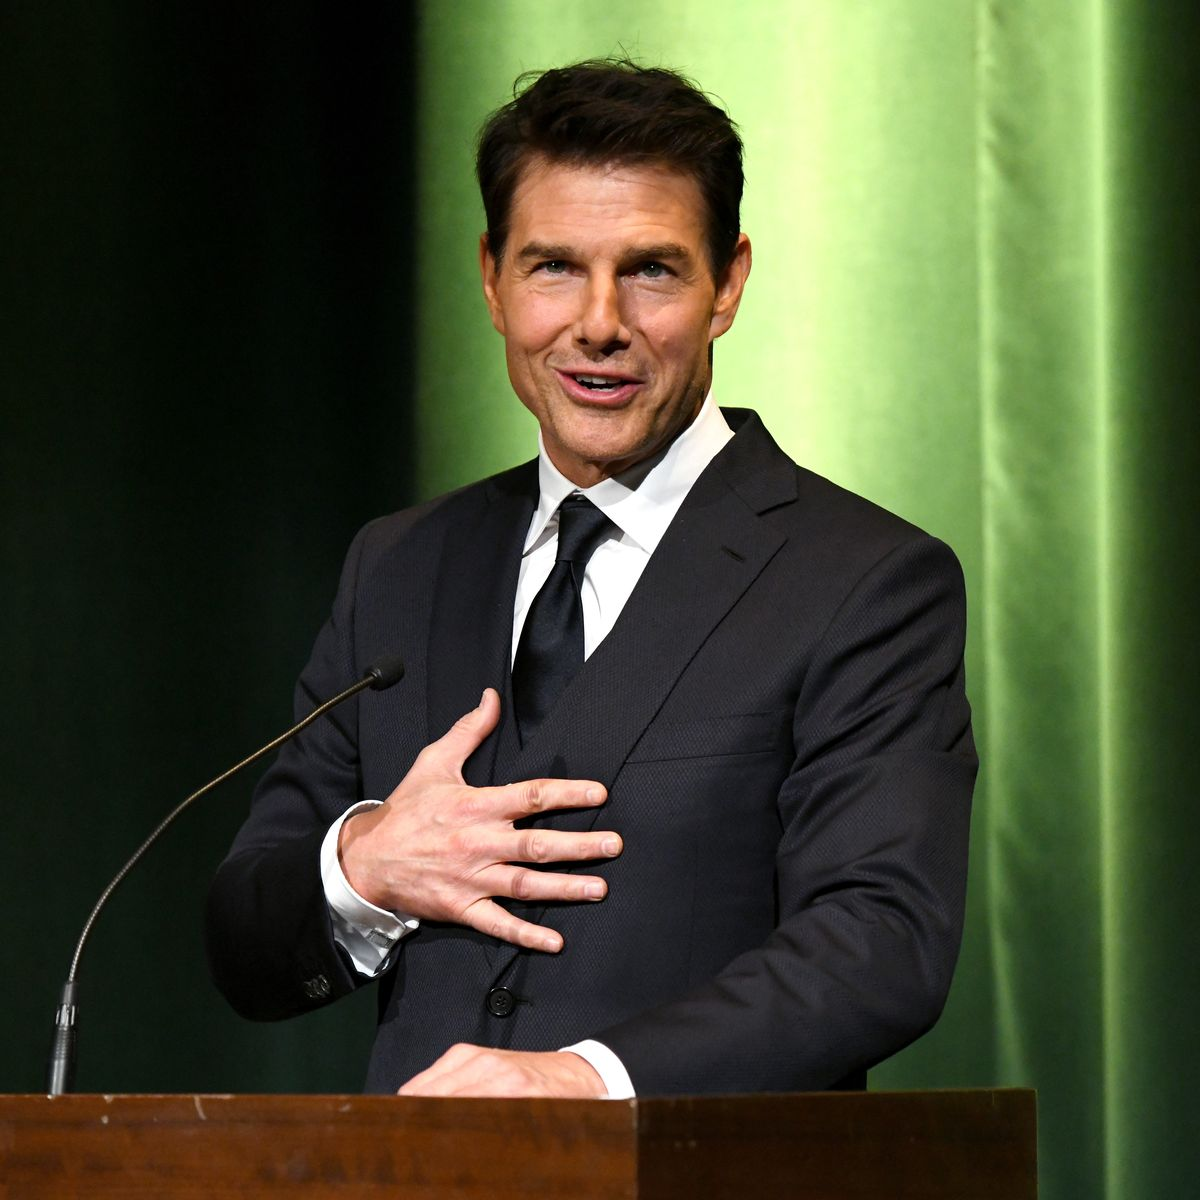 Tom Cruise speaks at the 10th Annual Lumiere Awards at Warner Bros. Studios on January 30, 2019 | Getty Images